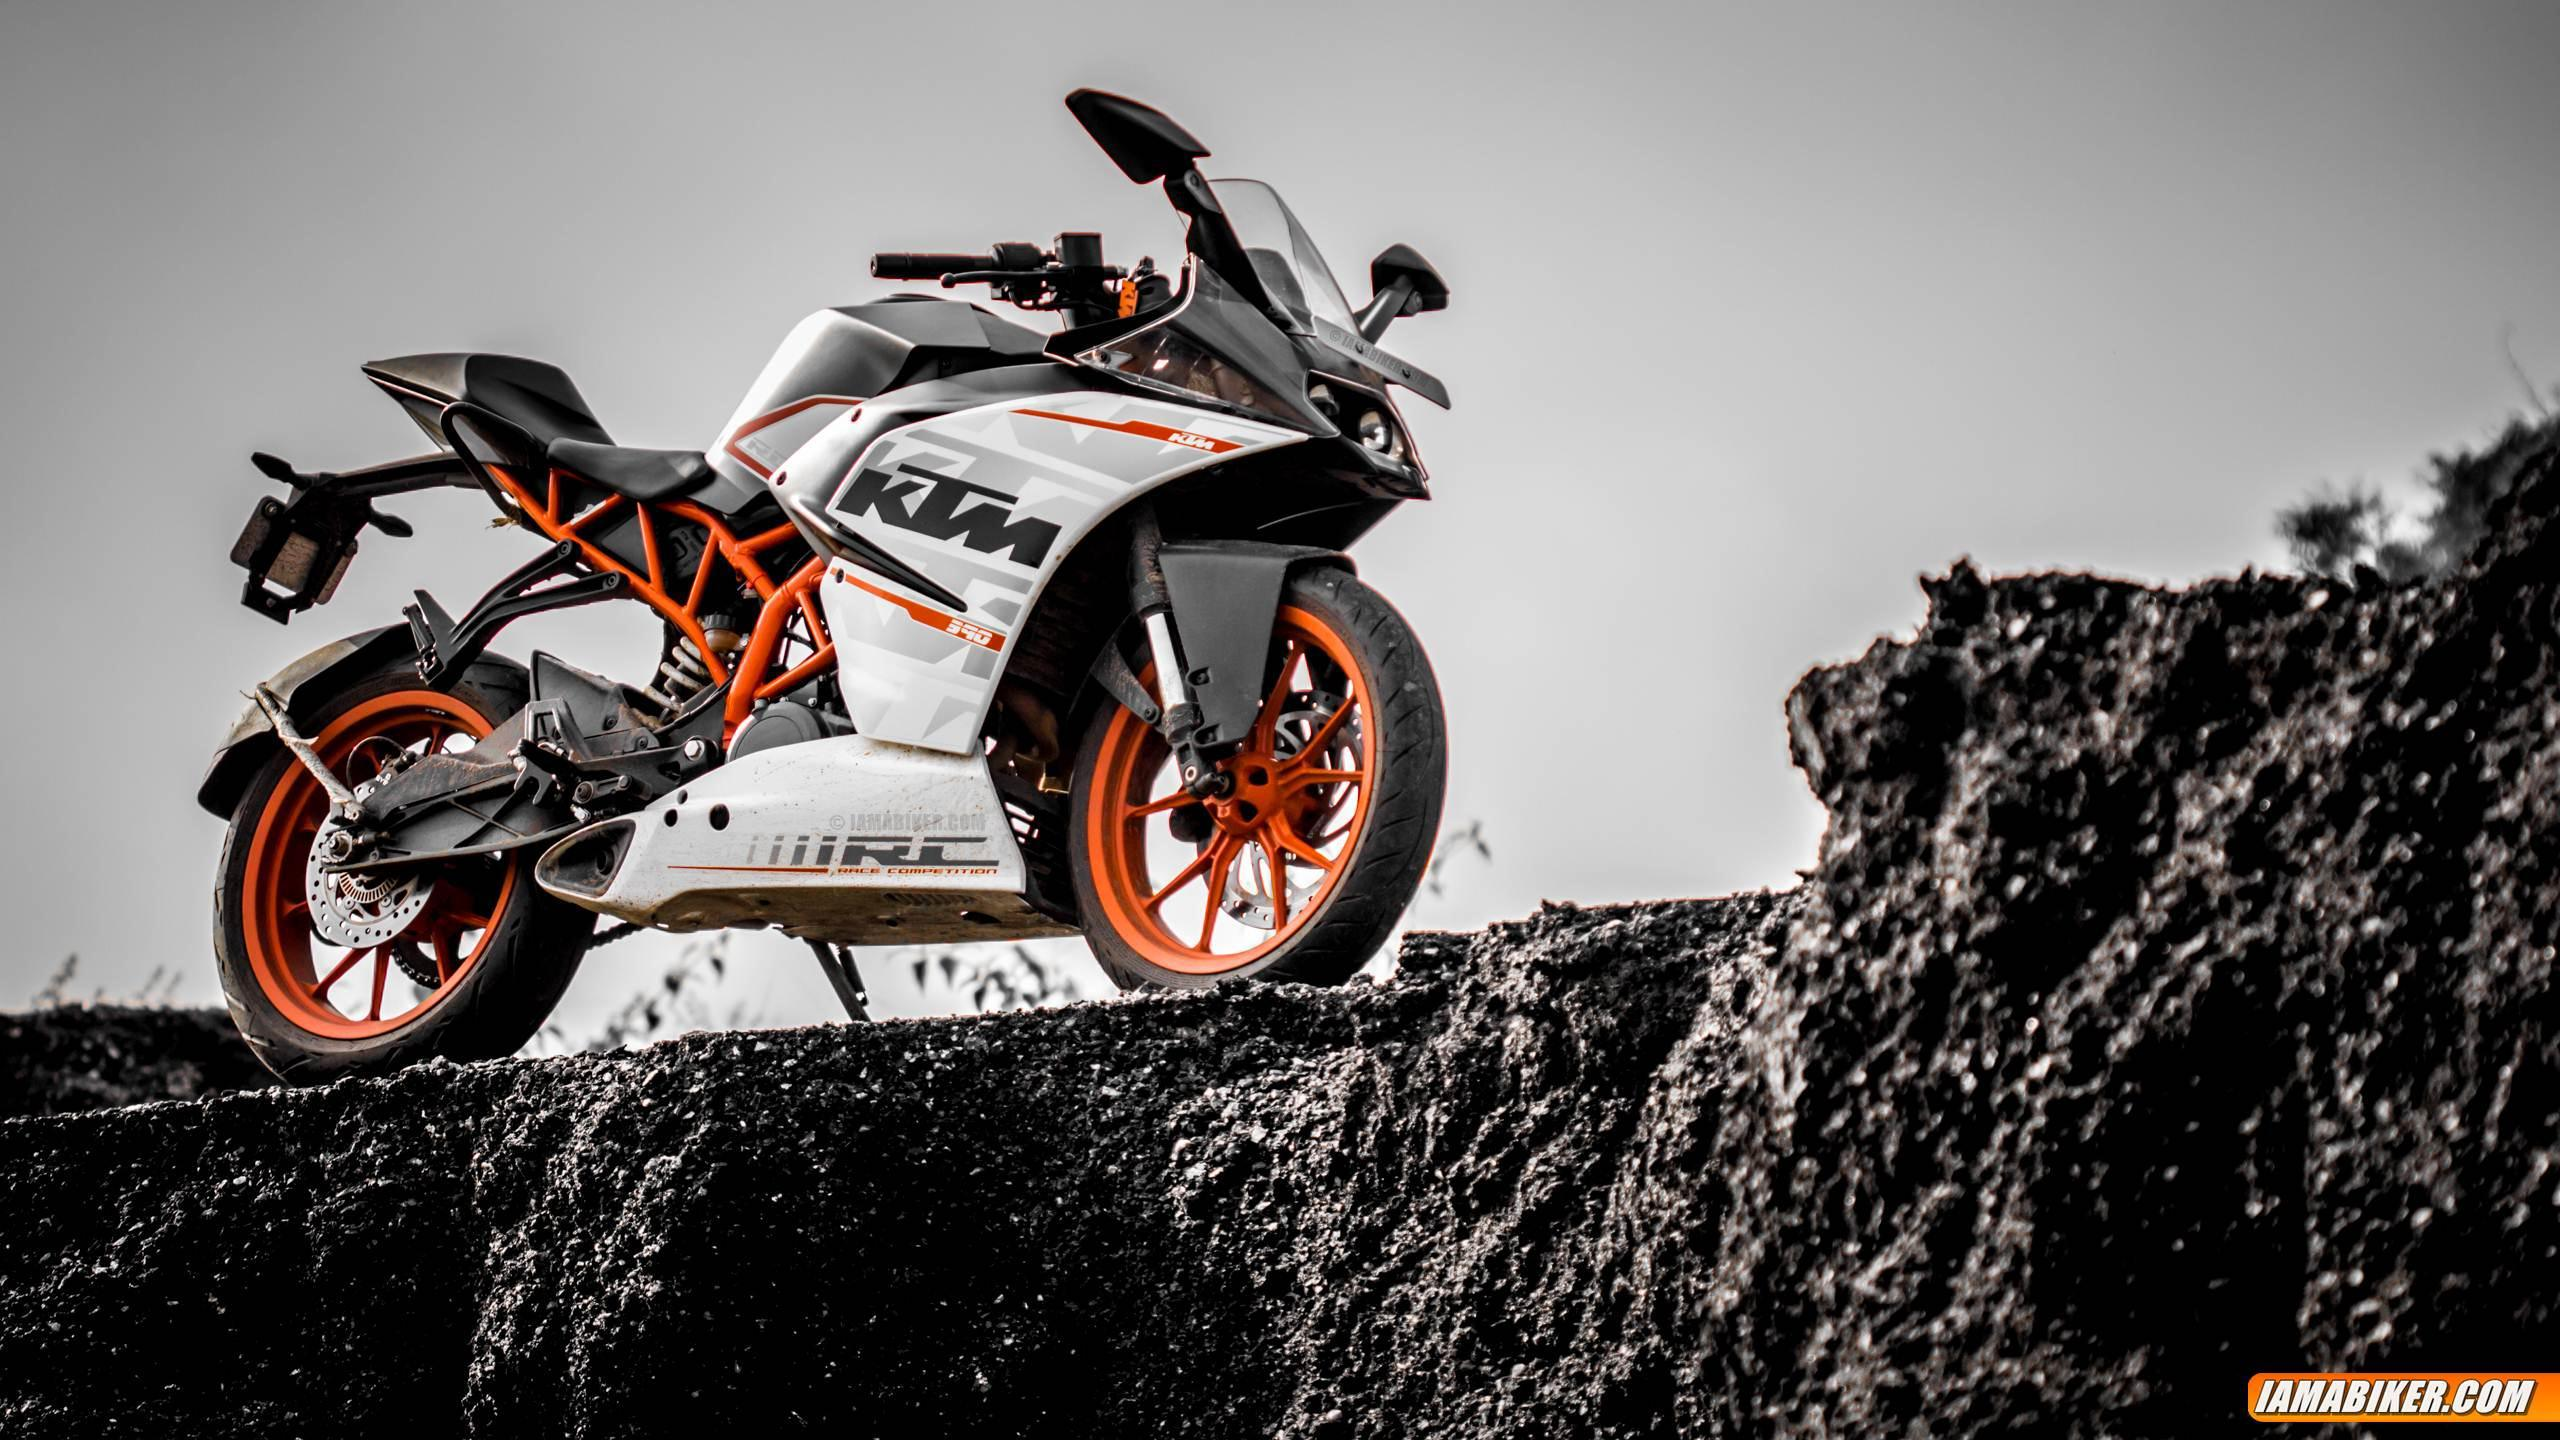 KTM Exceeds €1 Billion In Revenue, Becomes The Fastest